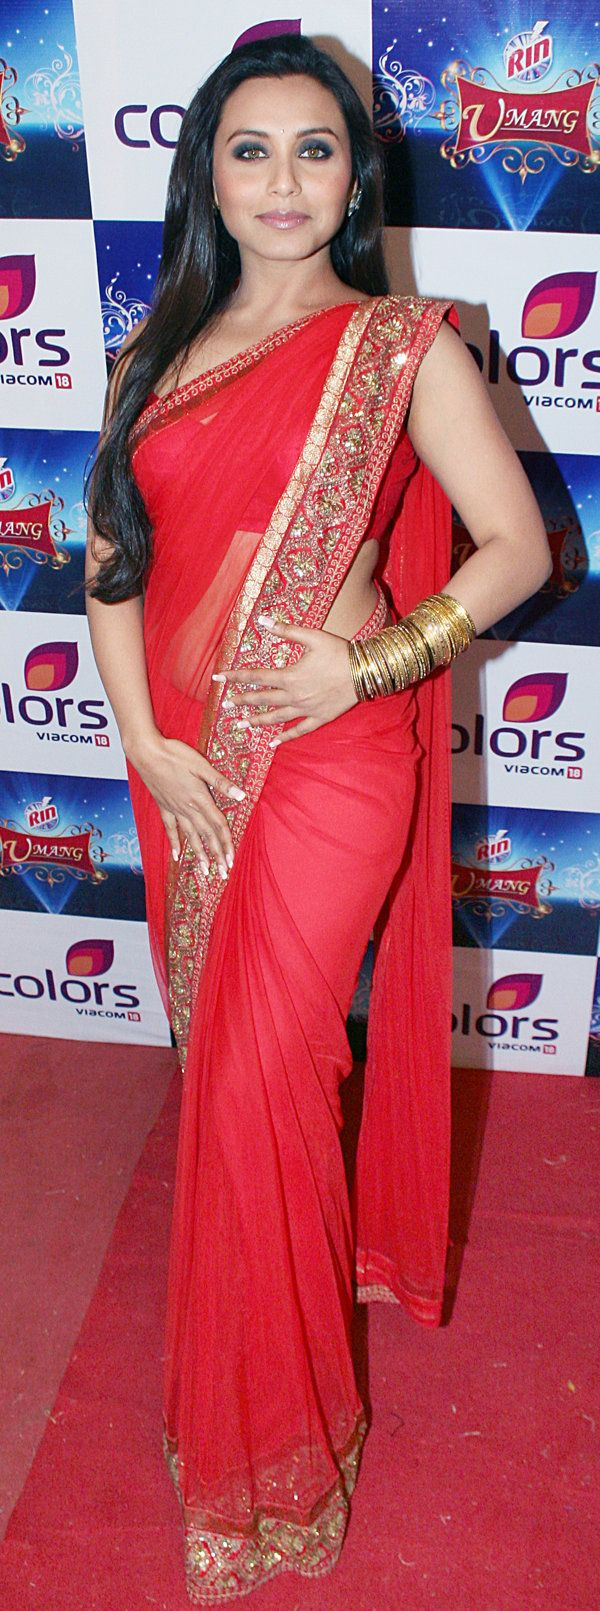 Who looks the sexiest in a saree? - Yahoo! Lifestyle India